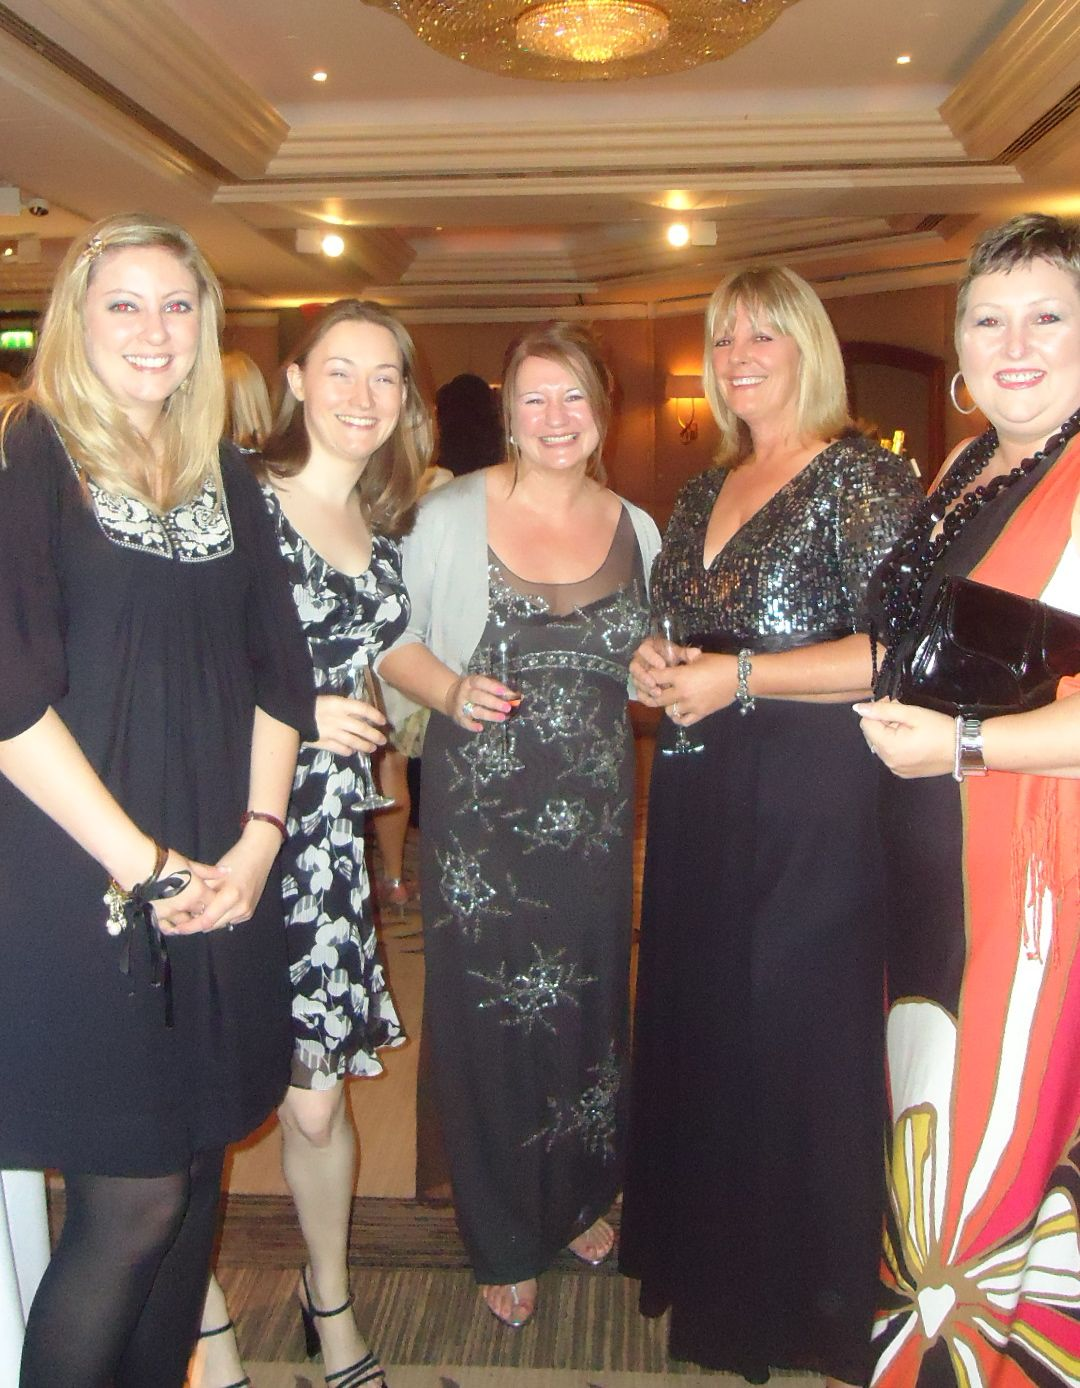 Women in Gaming Awards 2011, a celebration of the outstanding acheivement of women in the gaming industry